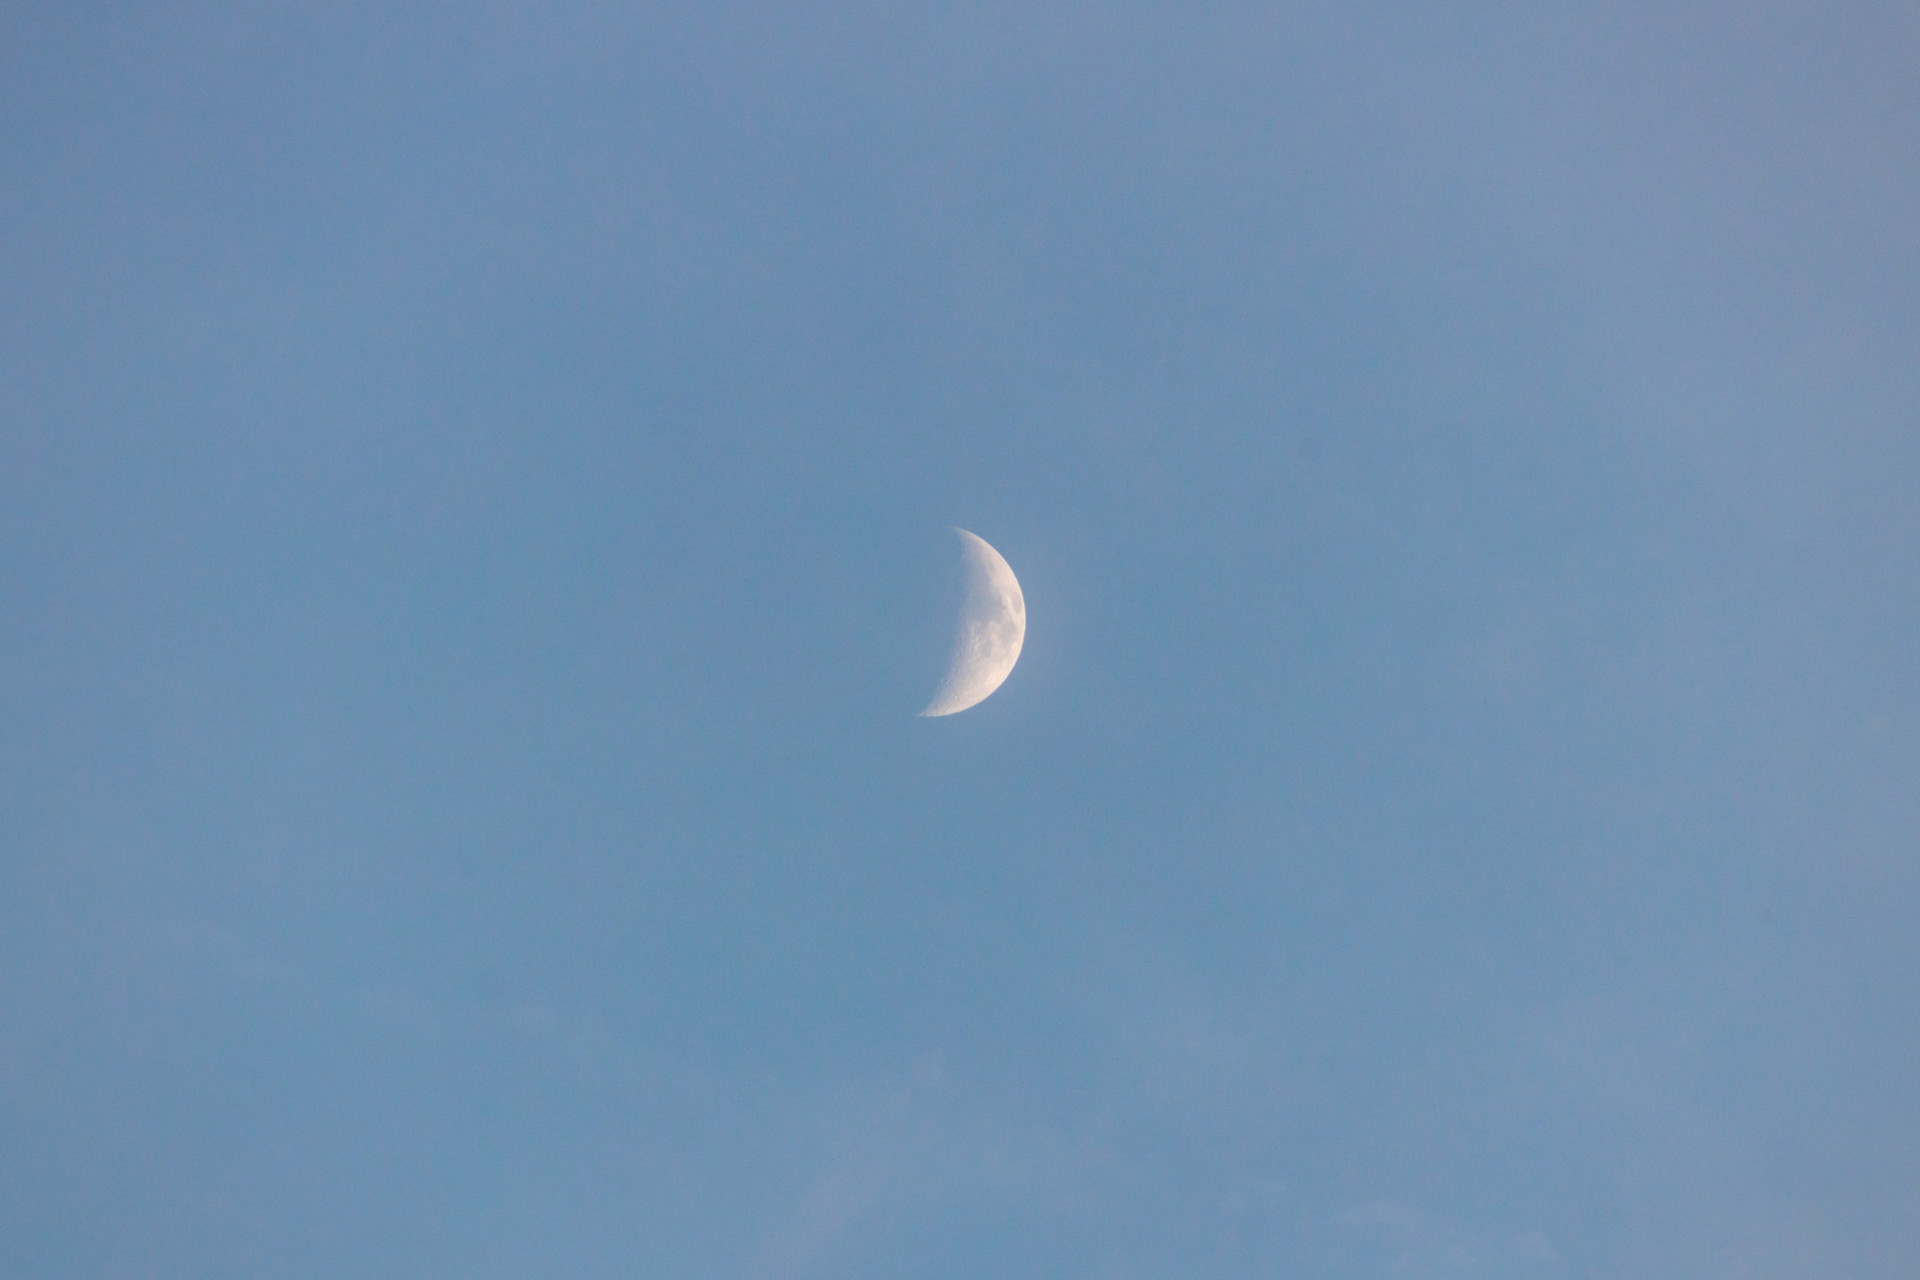 Crescent moon in the early evening